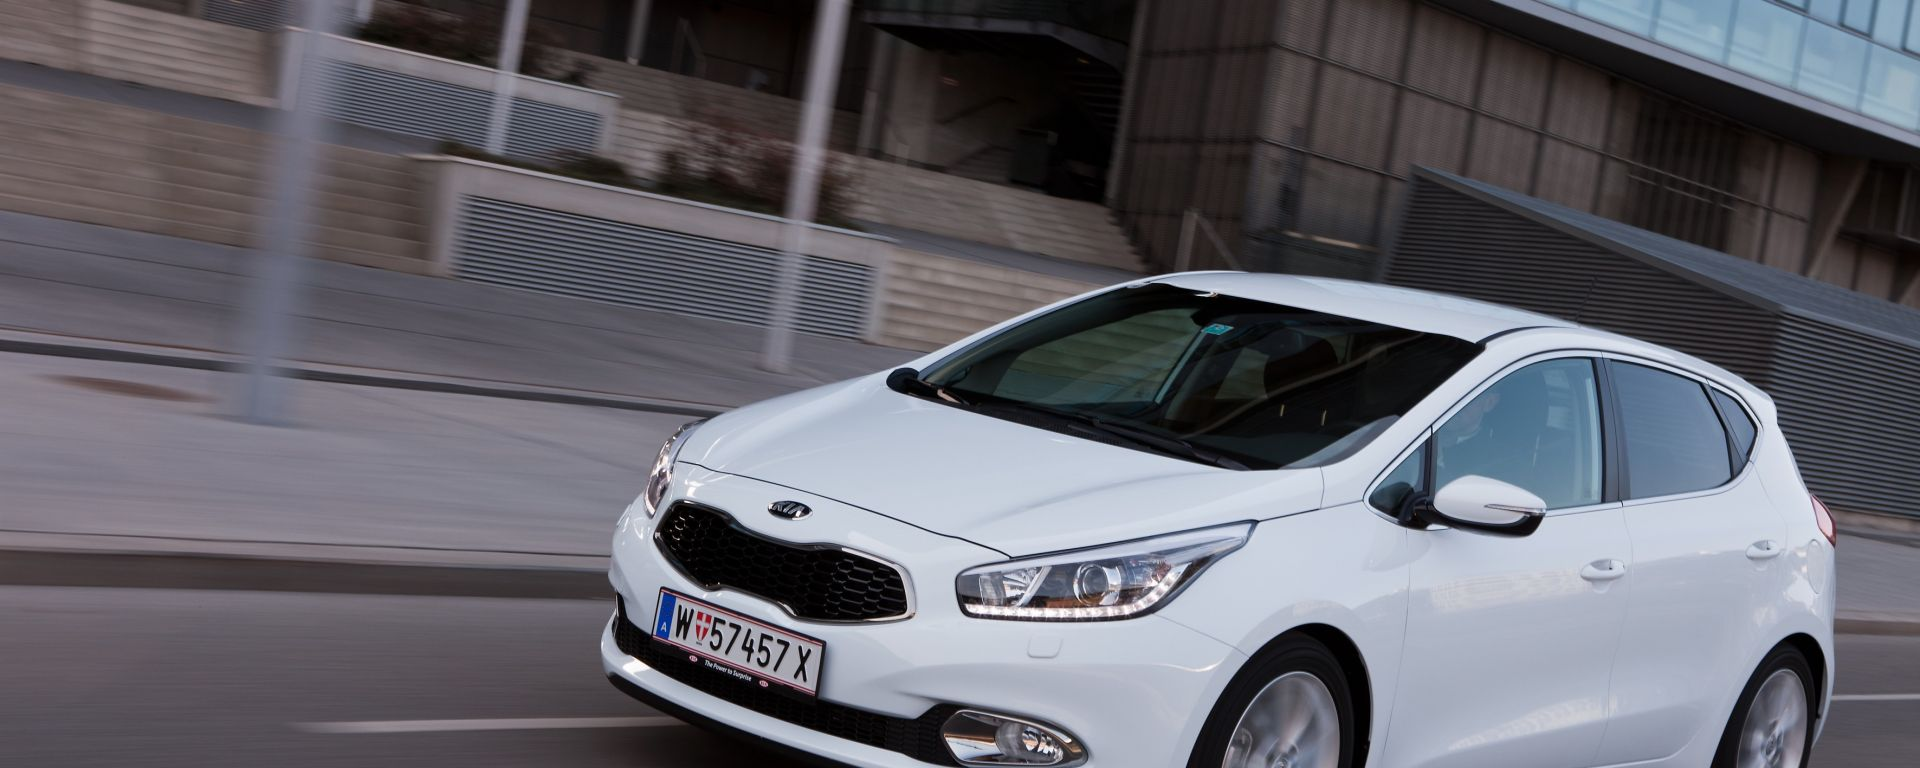 Kia Cee'd 2012, ora anche in video